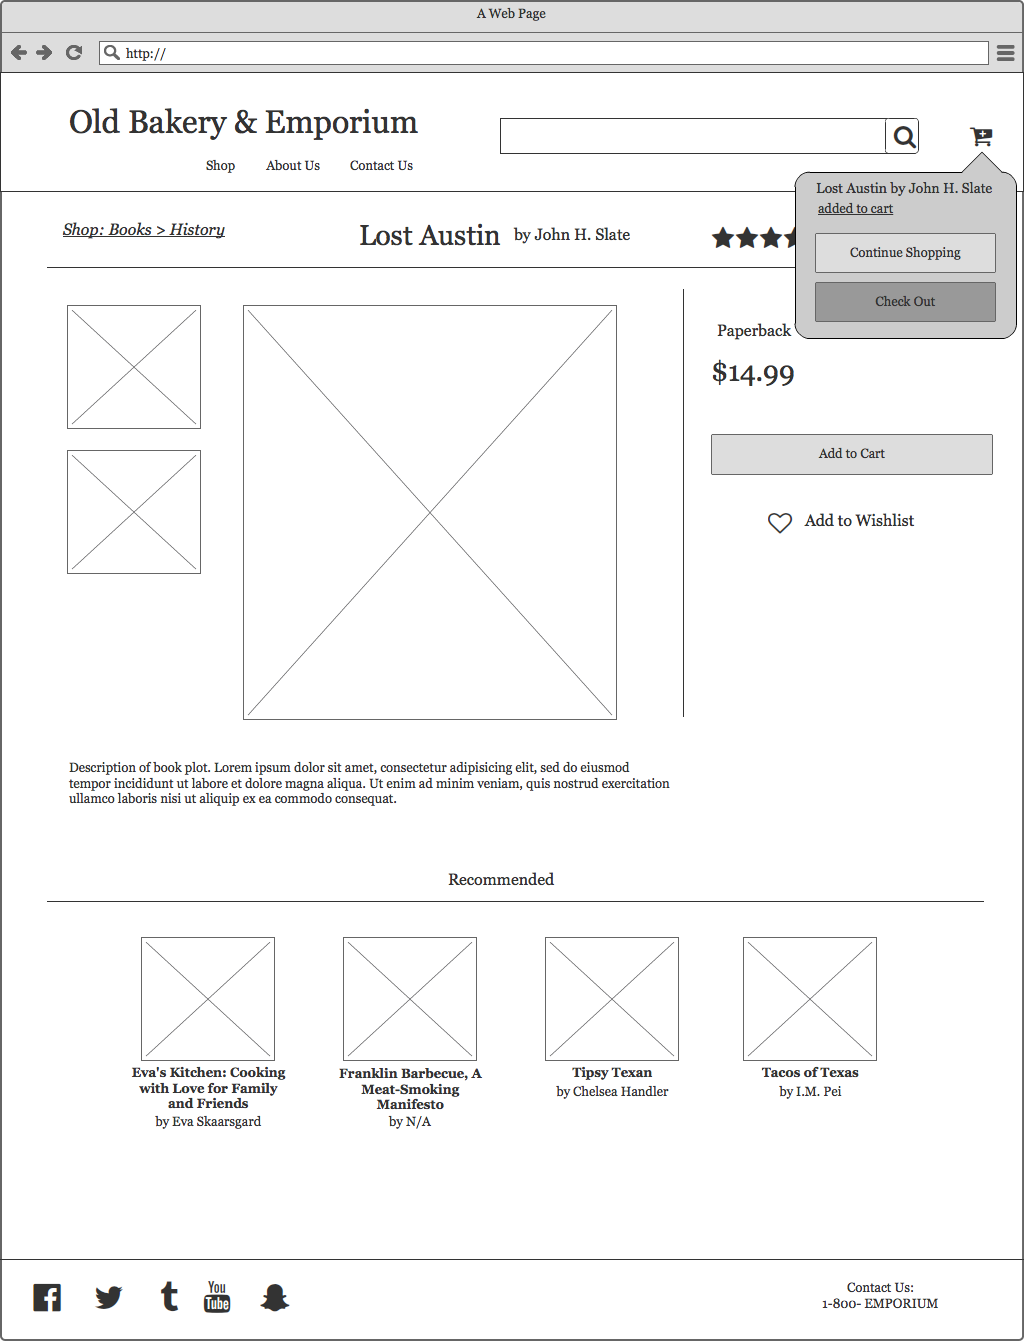 Most recent iteration of the product page.